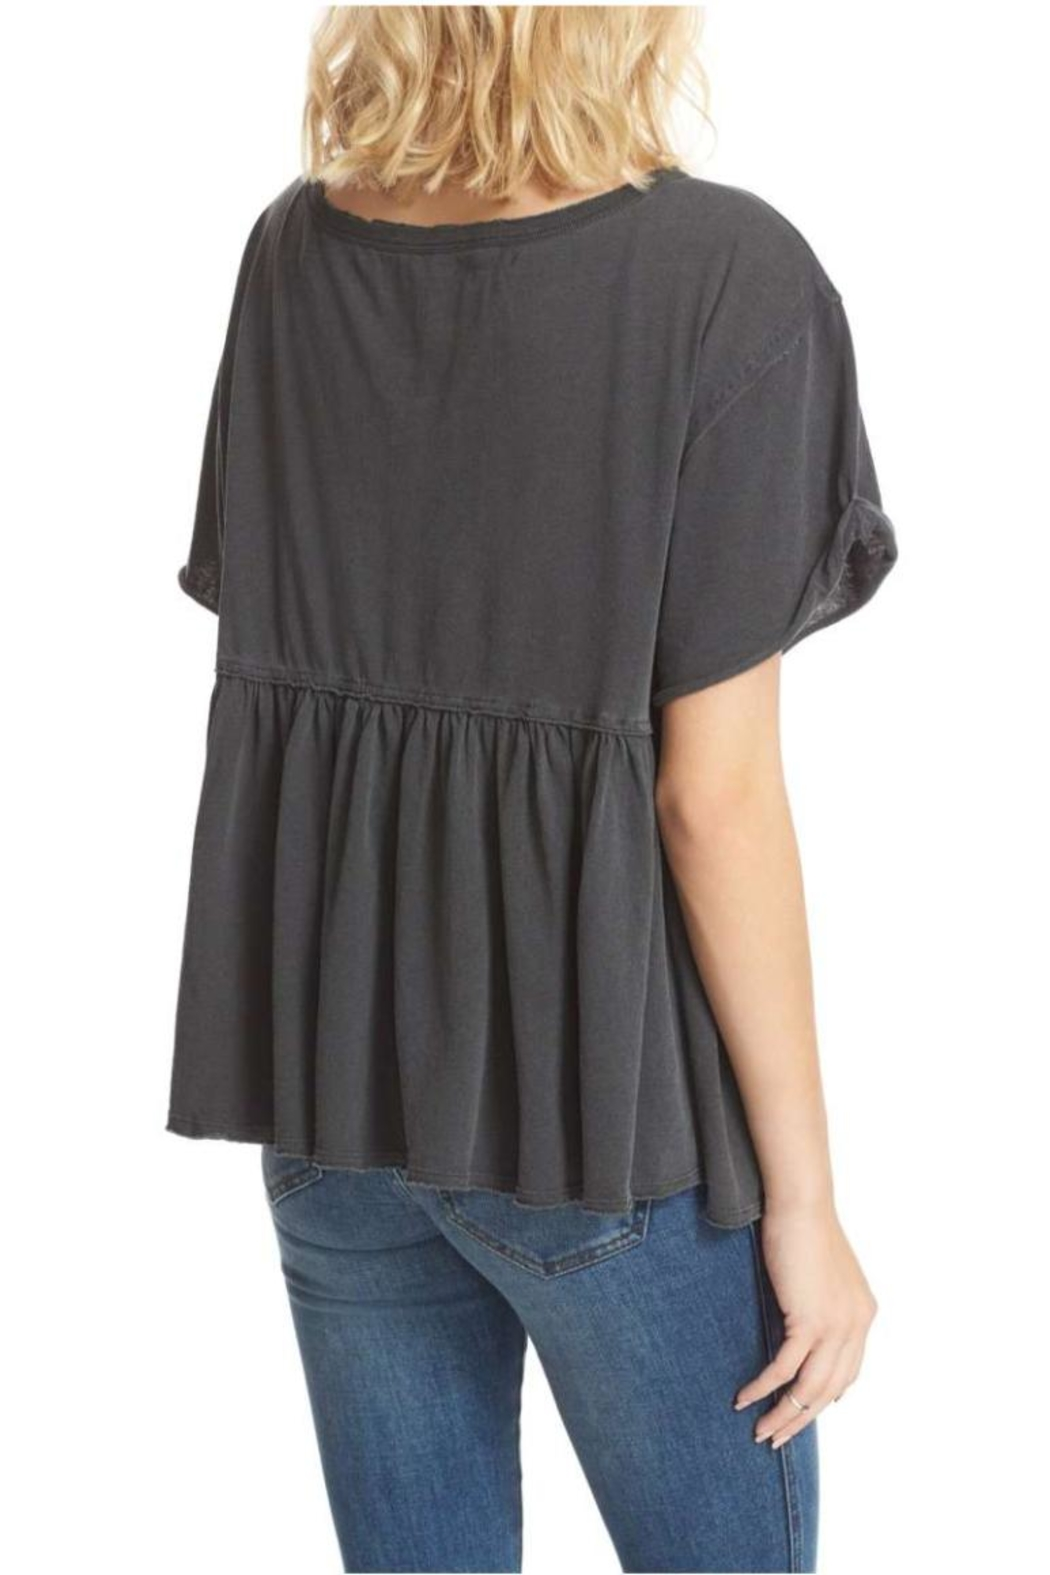 Free People Odyssey Tee - Front Full Image